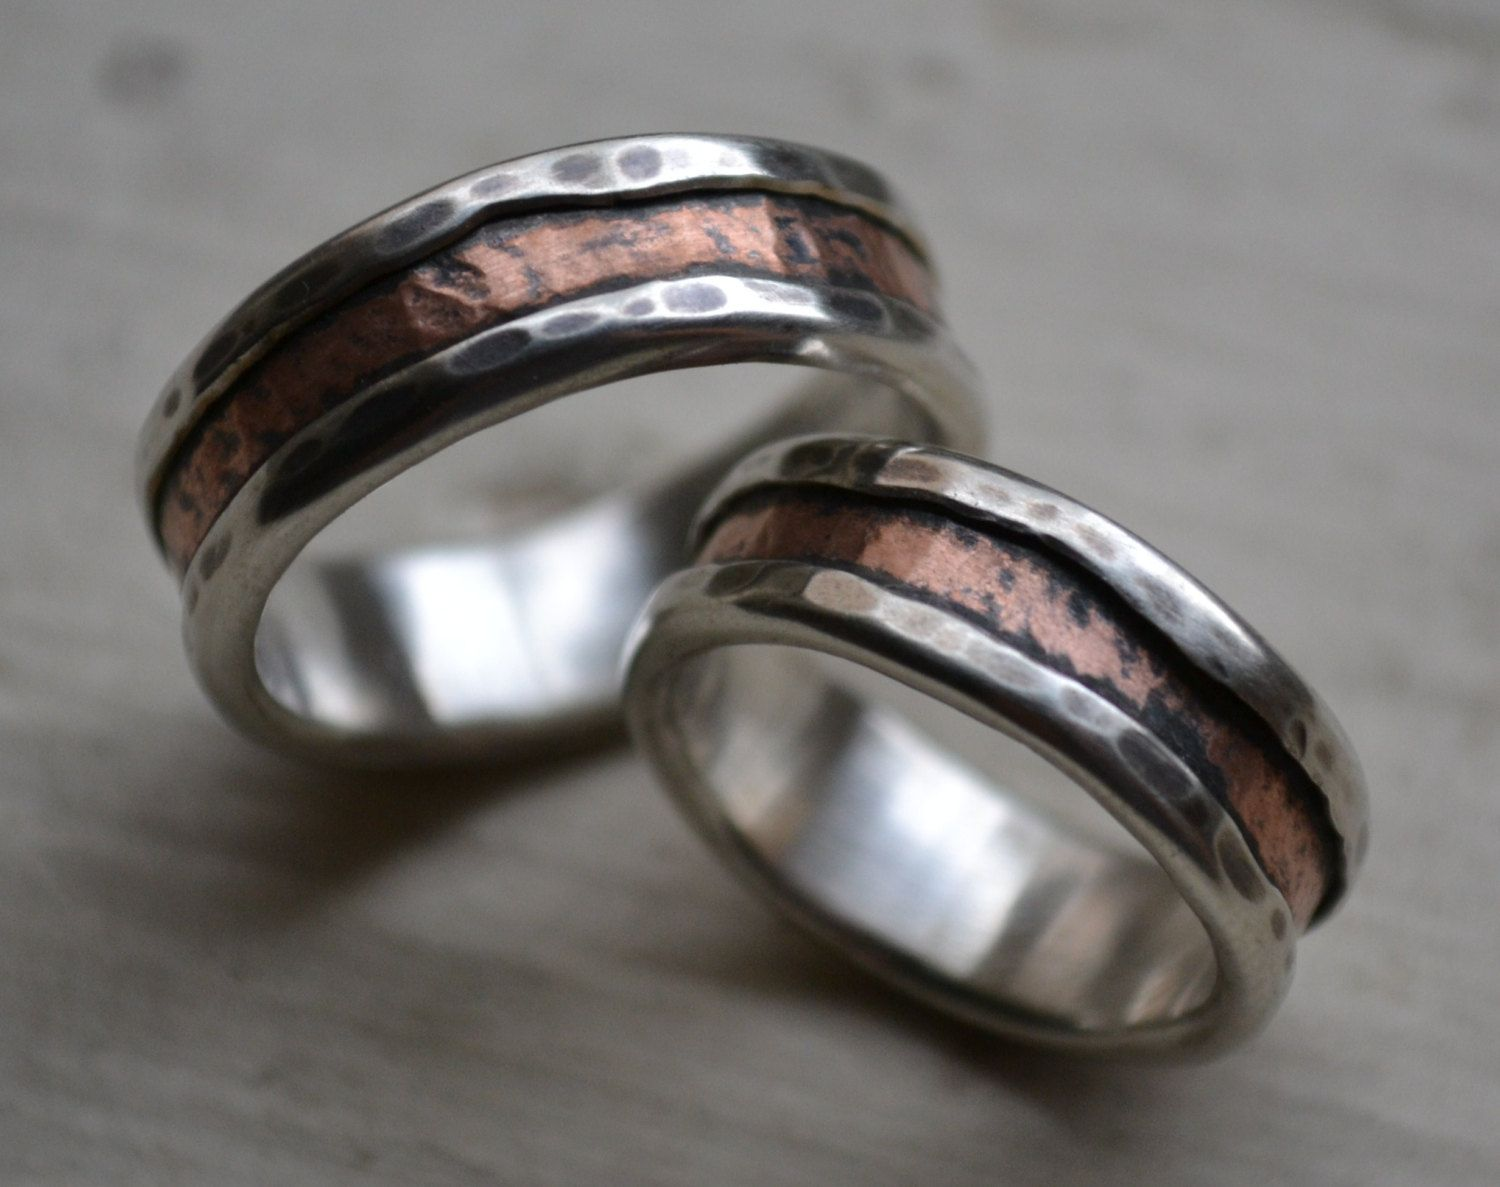 silver wedding rings rustic silver and copper wedding ring set handmade fine silver and copper wedding bands